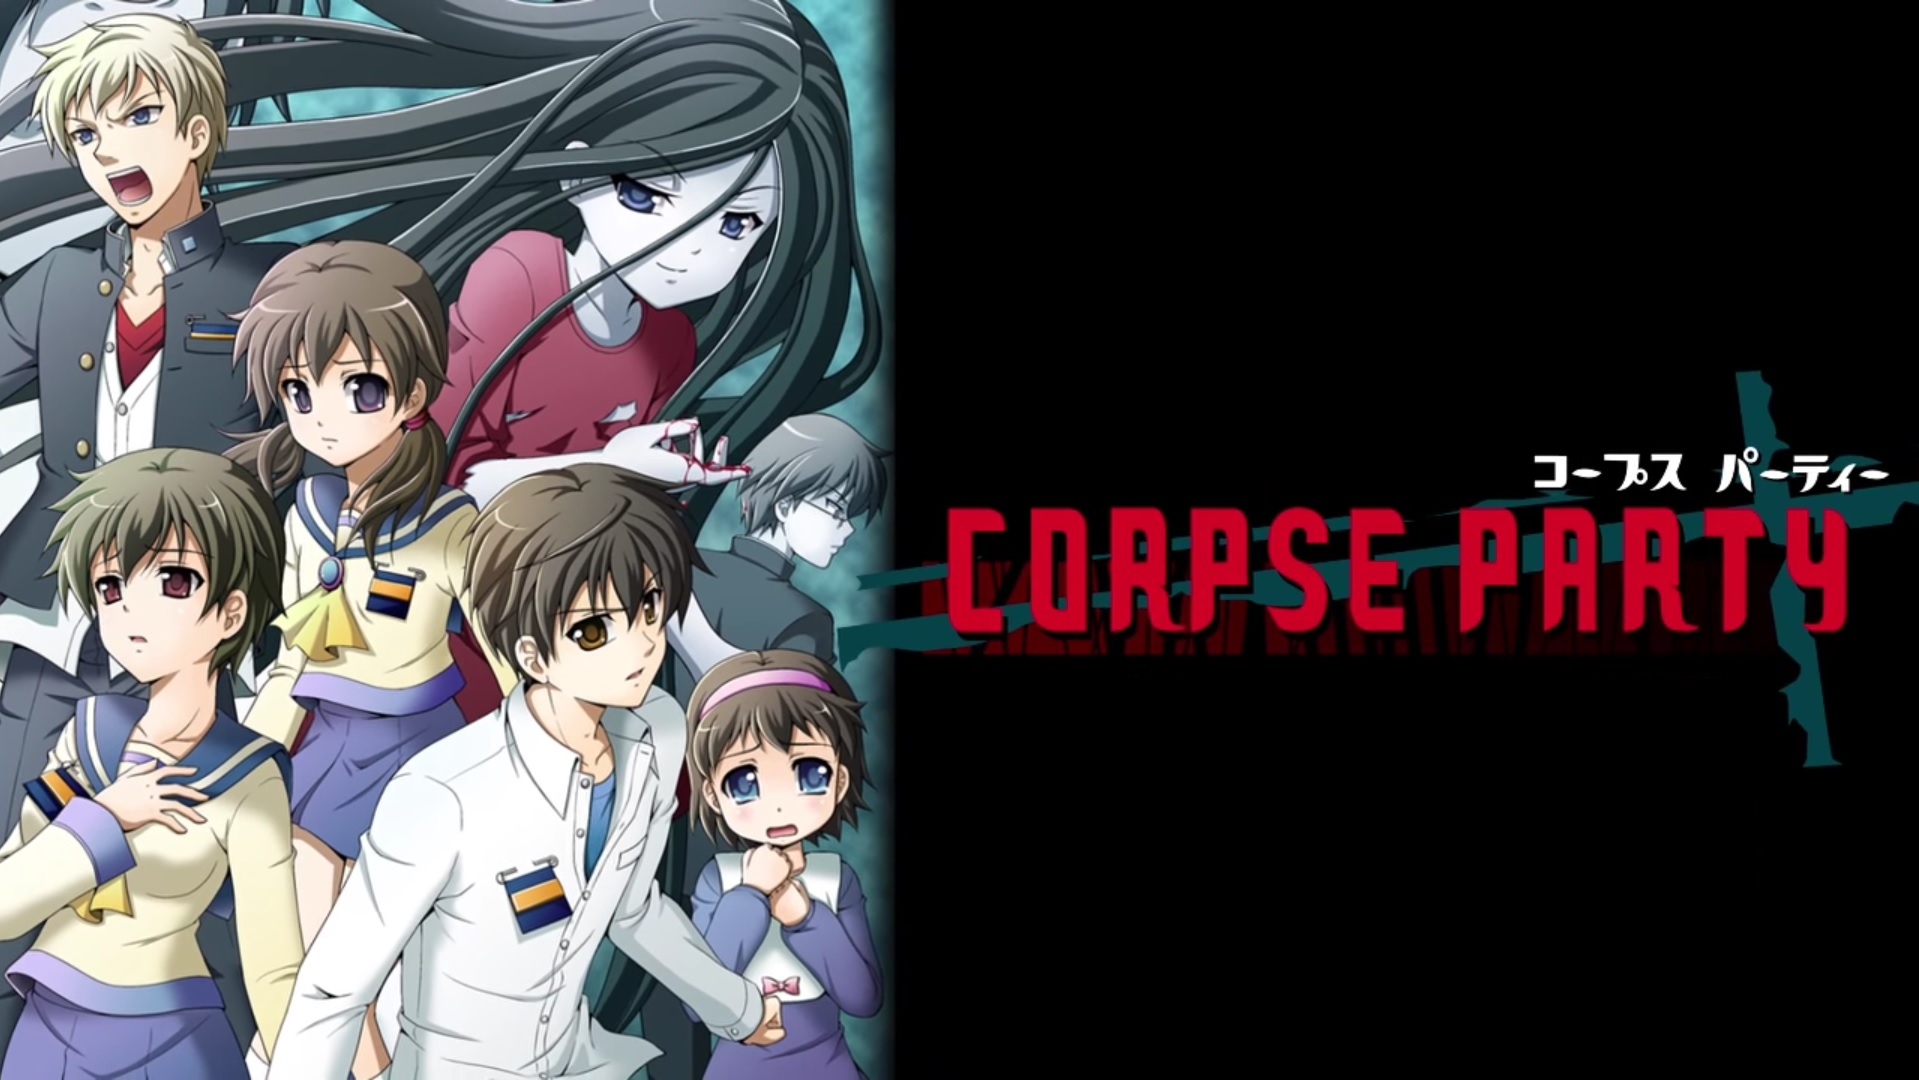 corpse-party-pc-artwork-001